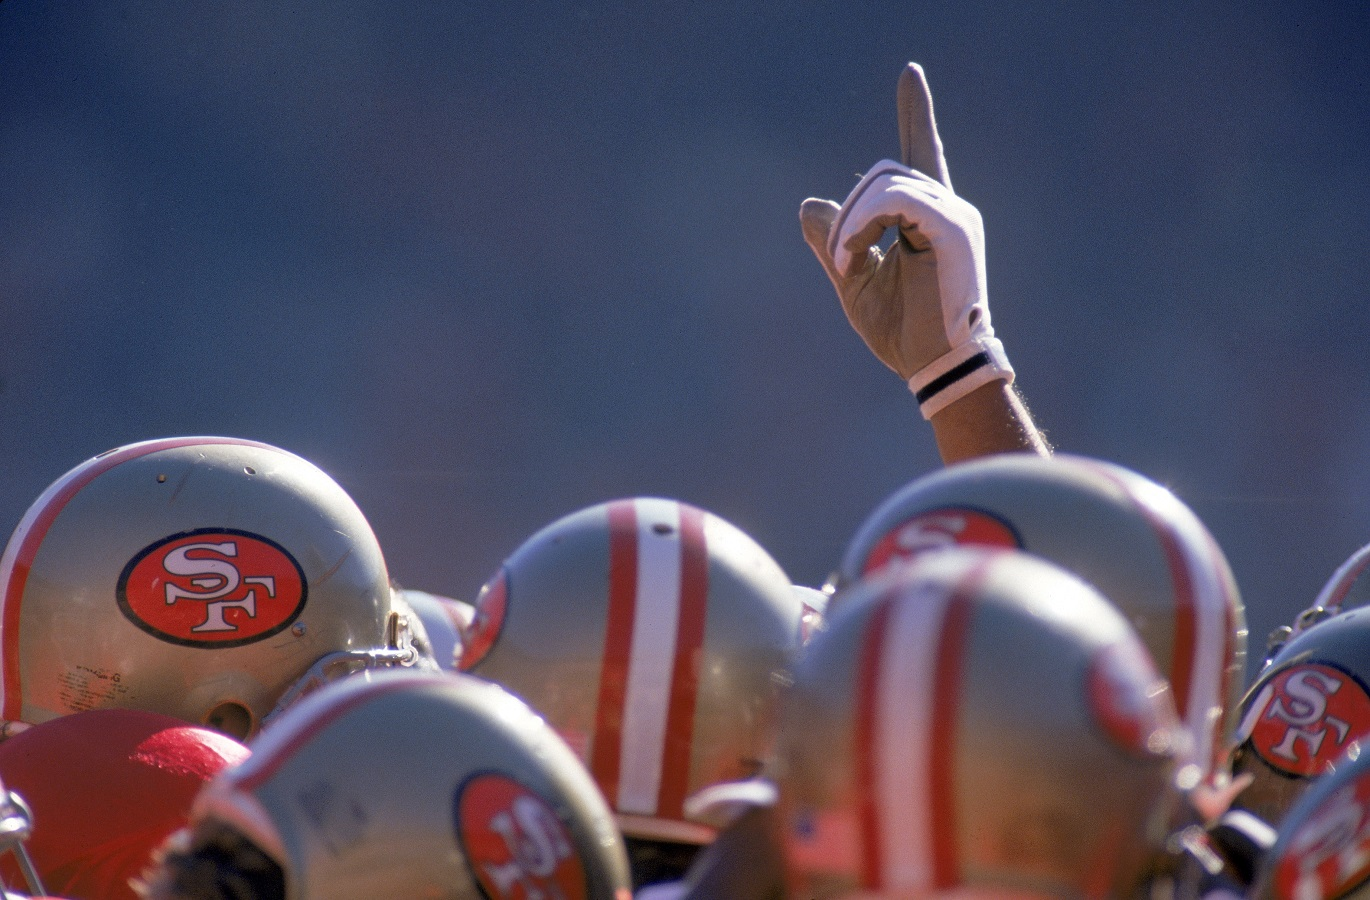 The San Francisco 49ers Once Went Through a Redesign So Disastrous It Lasted Less Than a Week